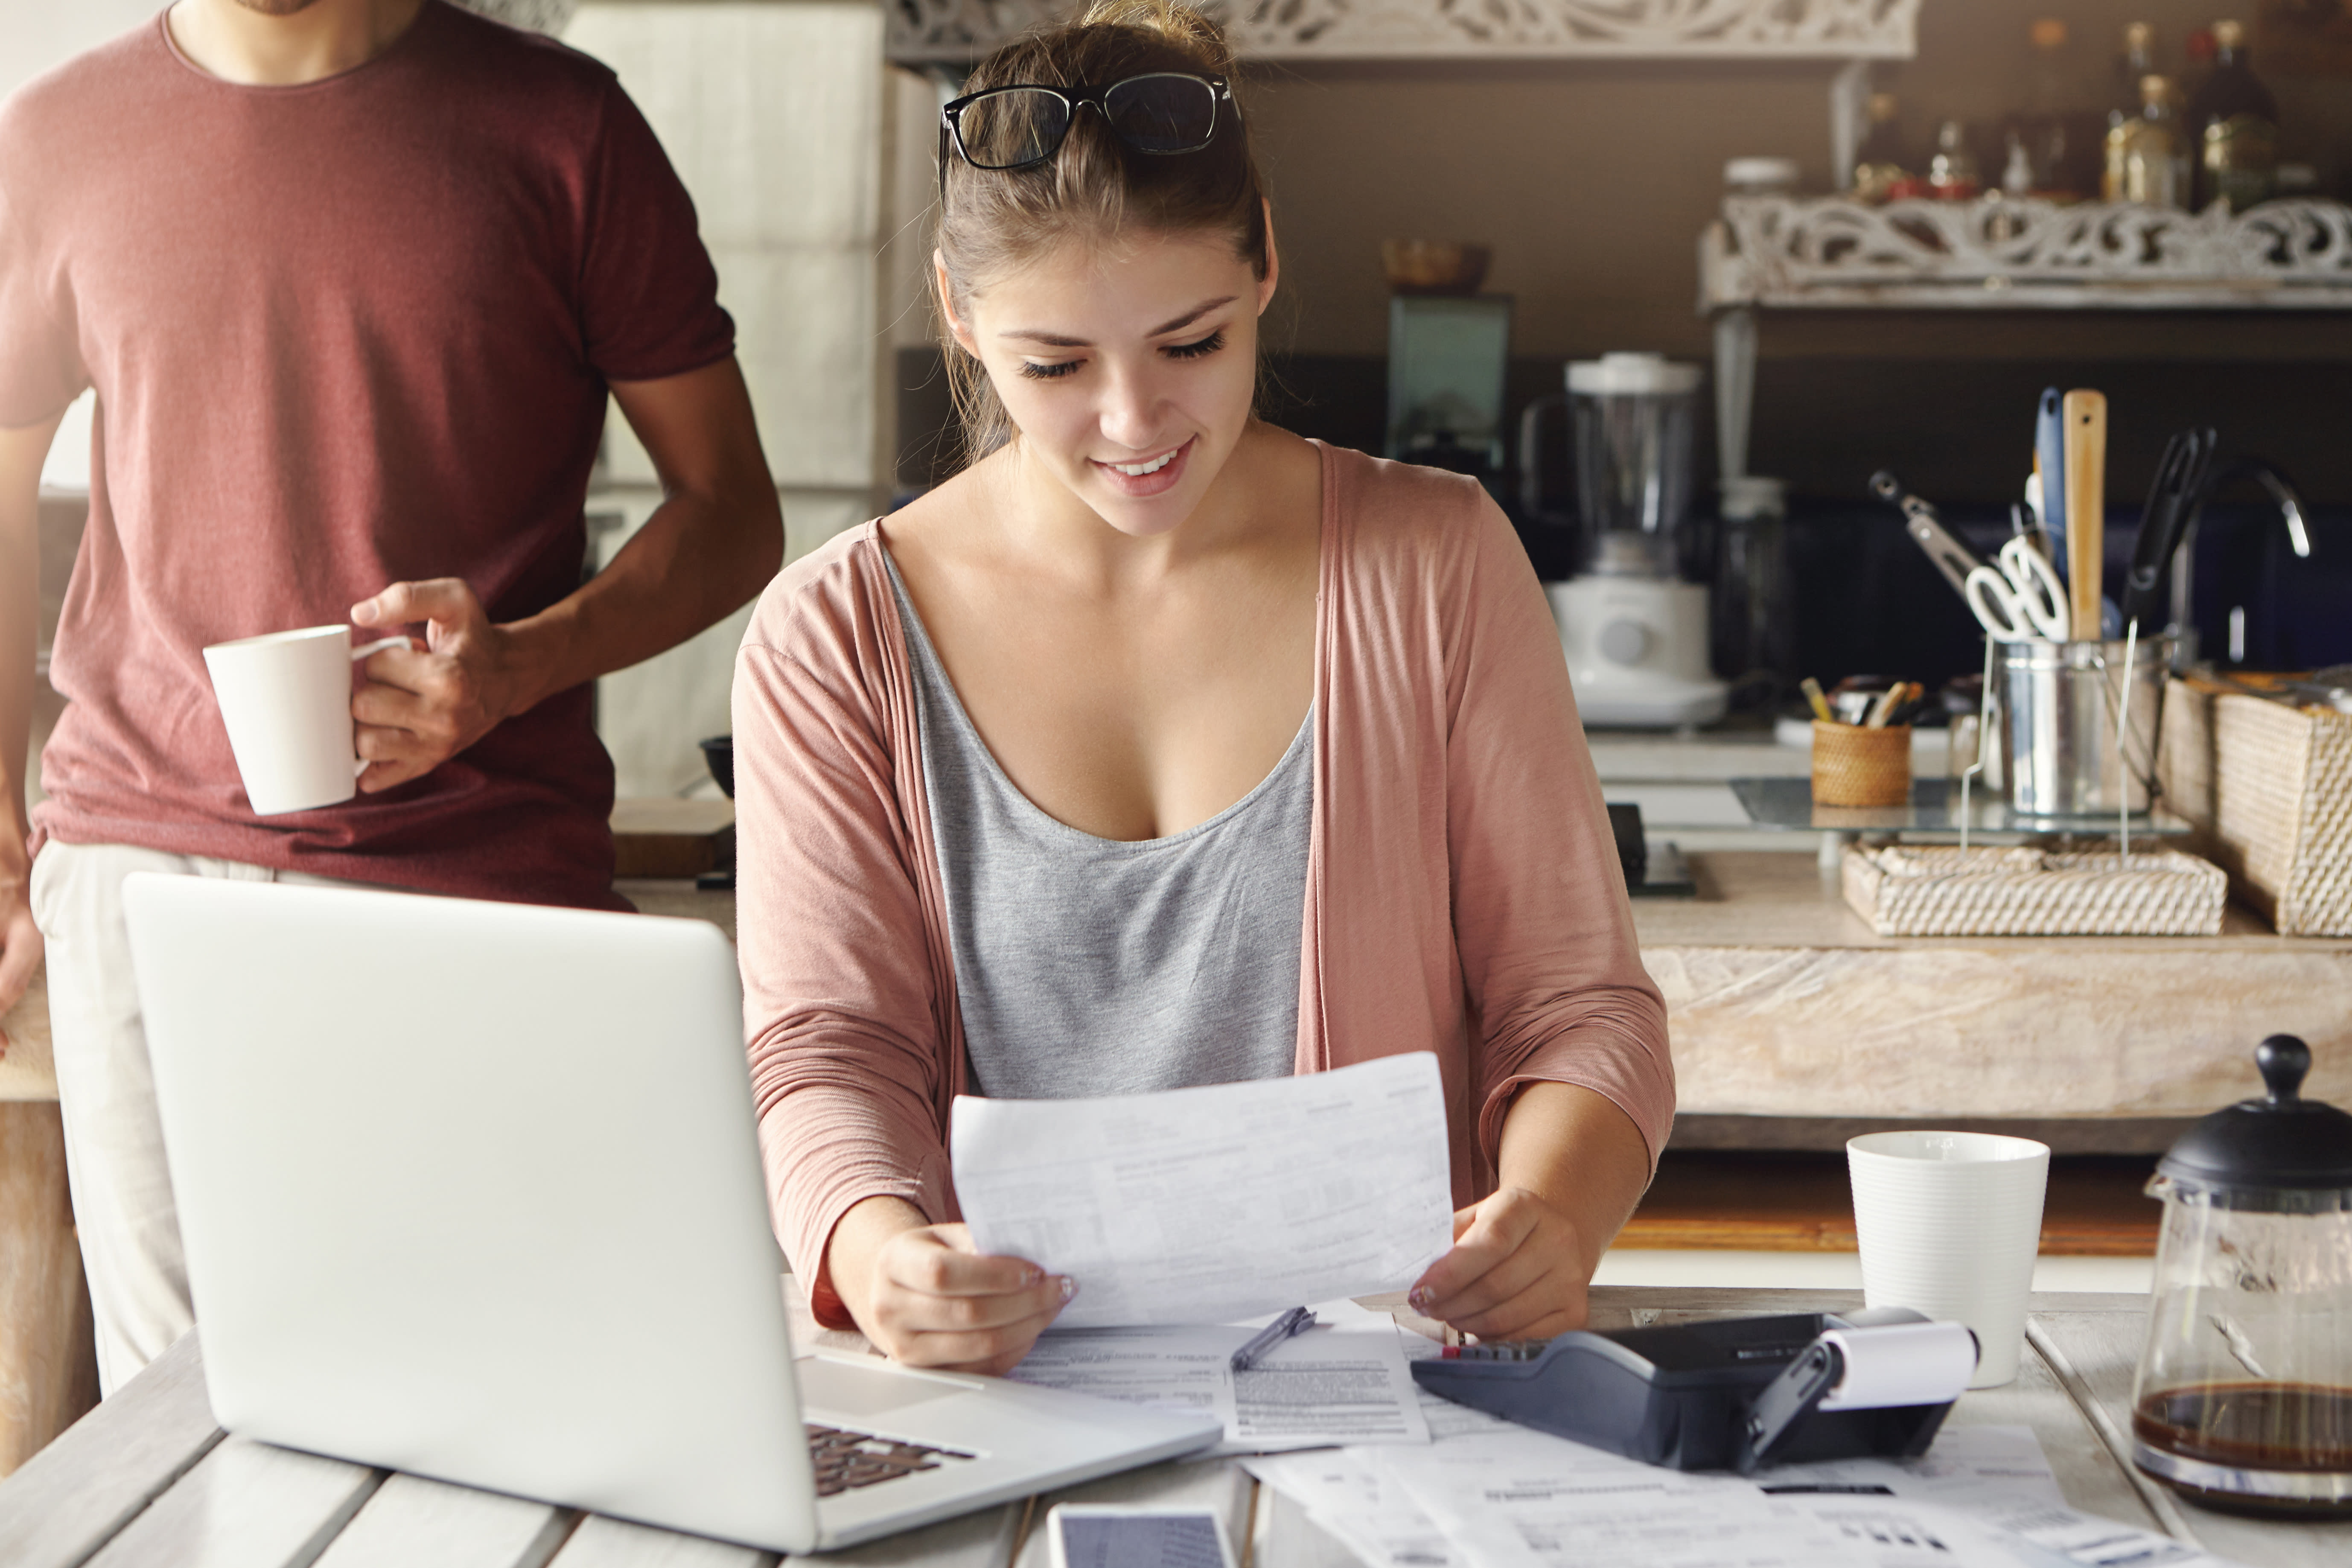 Woman on laptop working on taxes while her husband stands behind her